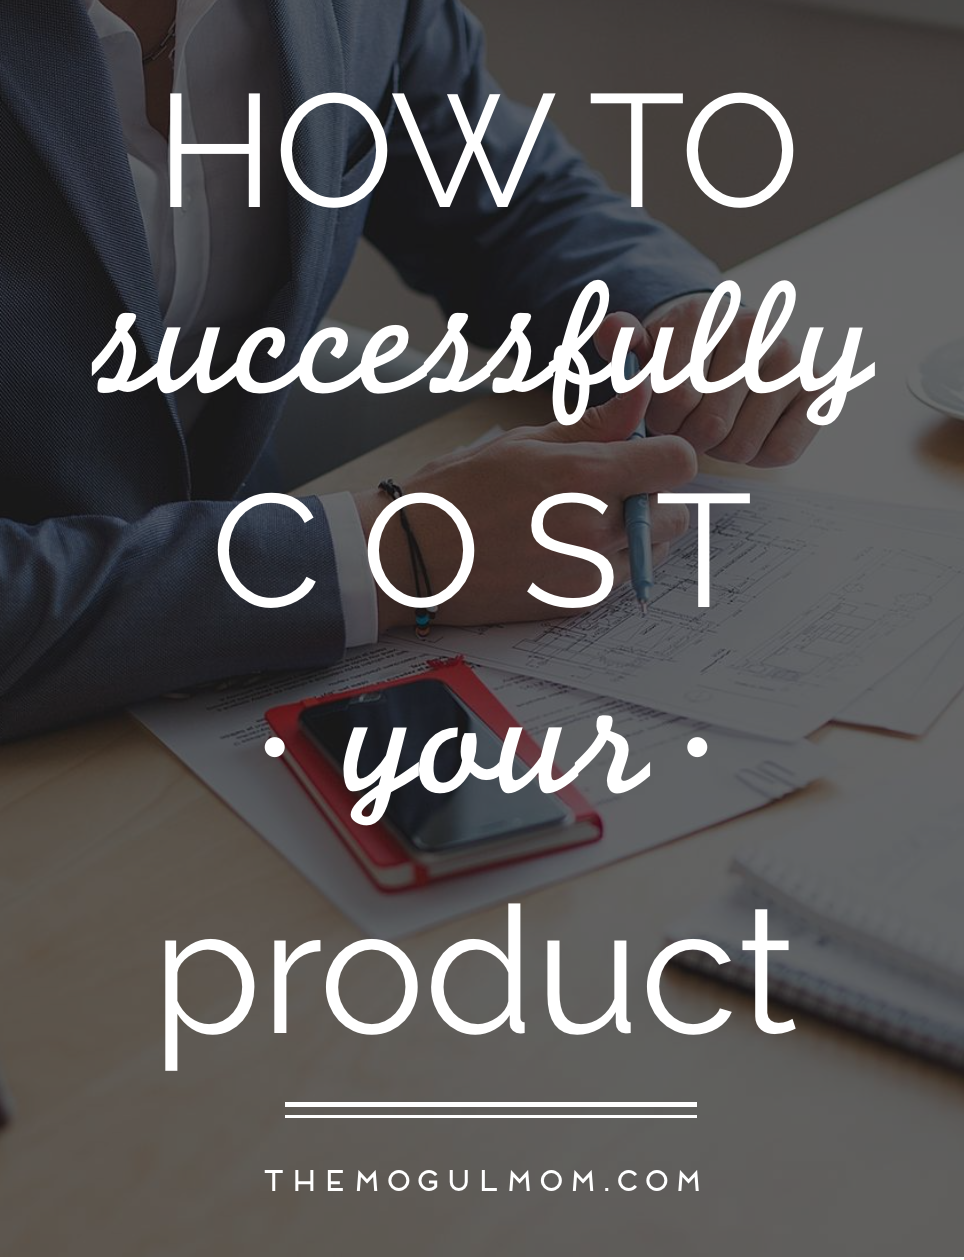 Costing Your Product for Success: 5 Tips From Apparel Development Experts